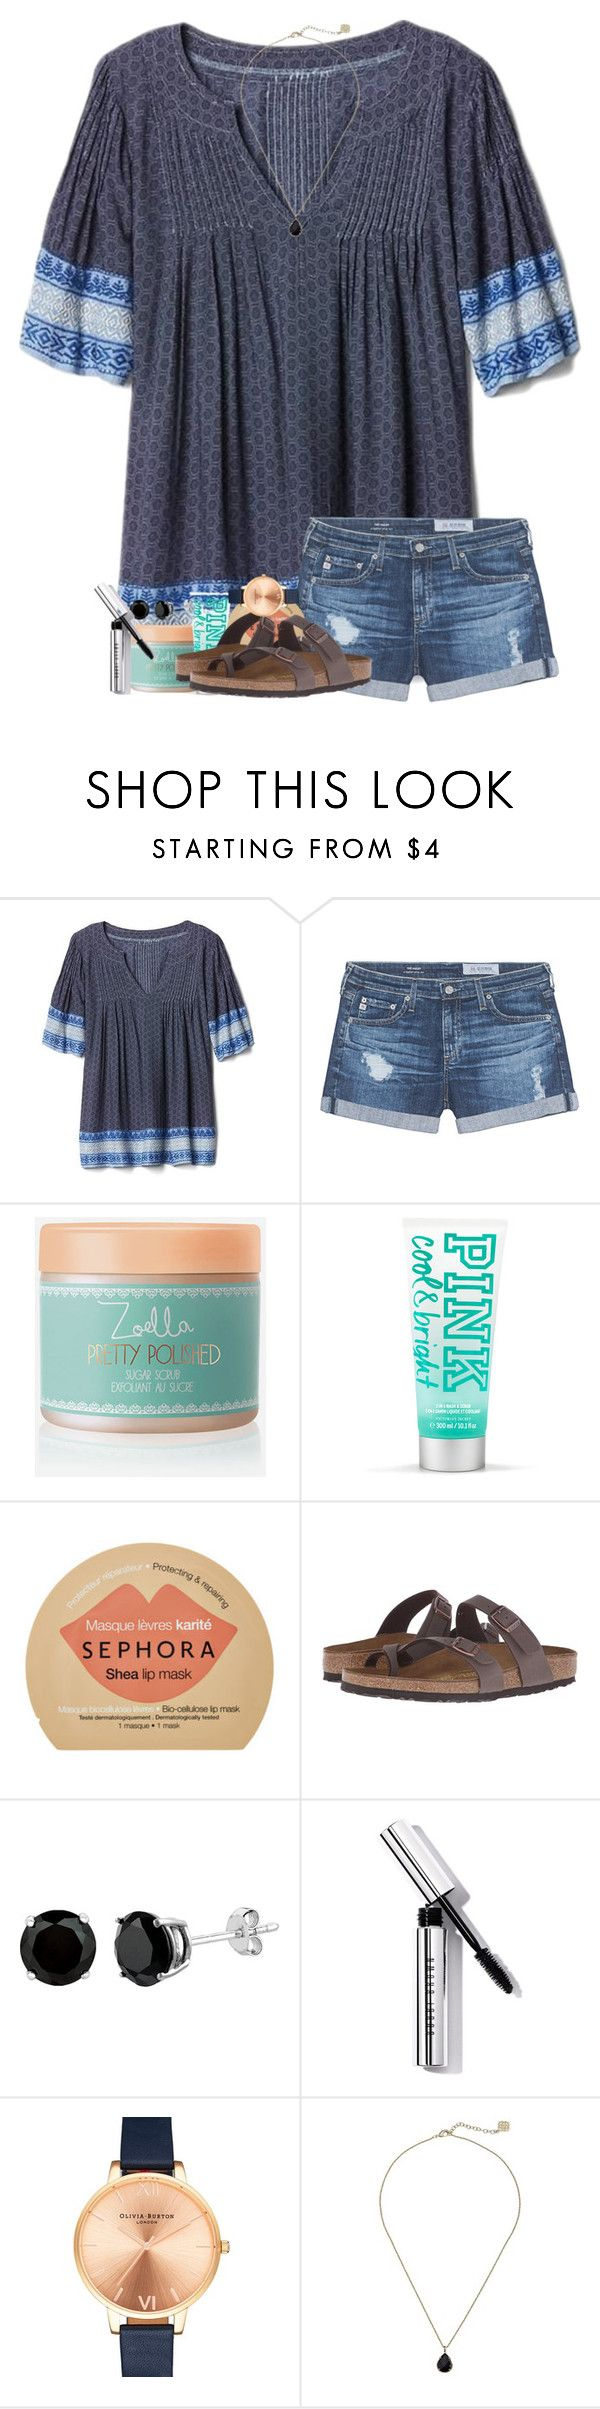 """""""baby we were made to last"""" by legitmaddywill ❤ liked on Polyvore featuring Gap, AG Adriano Goldschmied, Zoella Beauty, Sephora Collection, Birkenstock, Bobbi Brown Cosmetics, Olivia Burton and Kendra Scott"""